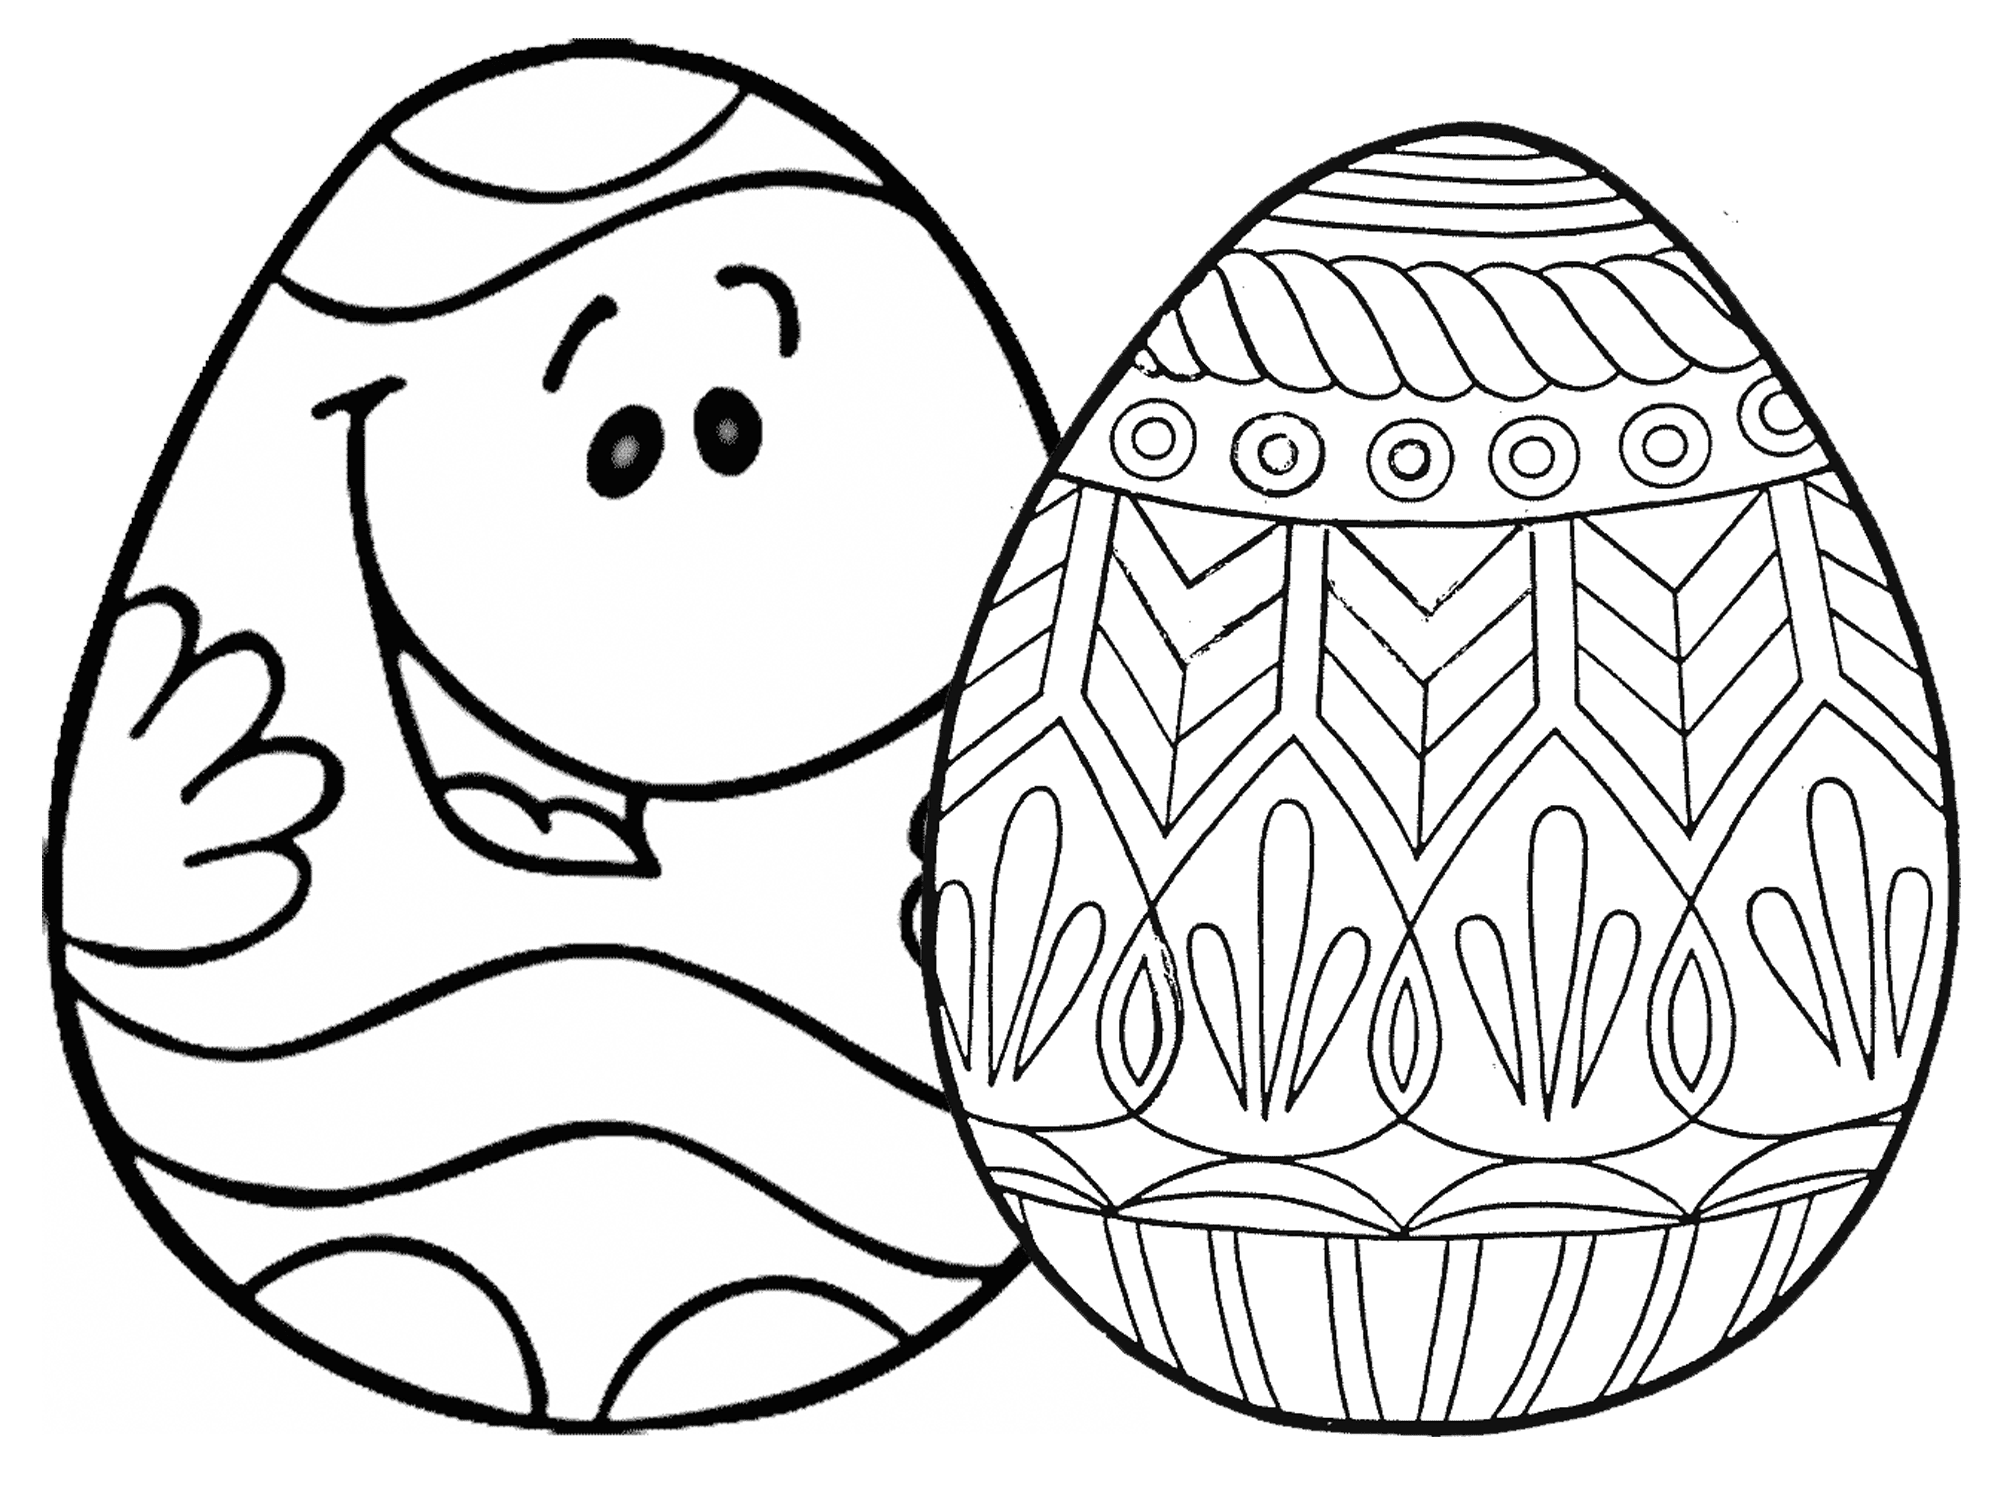 colouring picture easter egg easter coloring pages best coloring pages for kids easter picture colouring egg